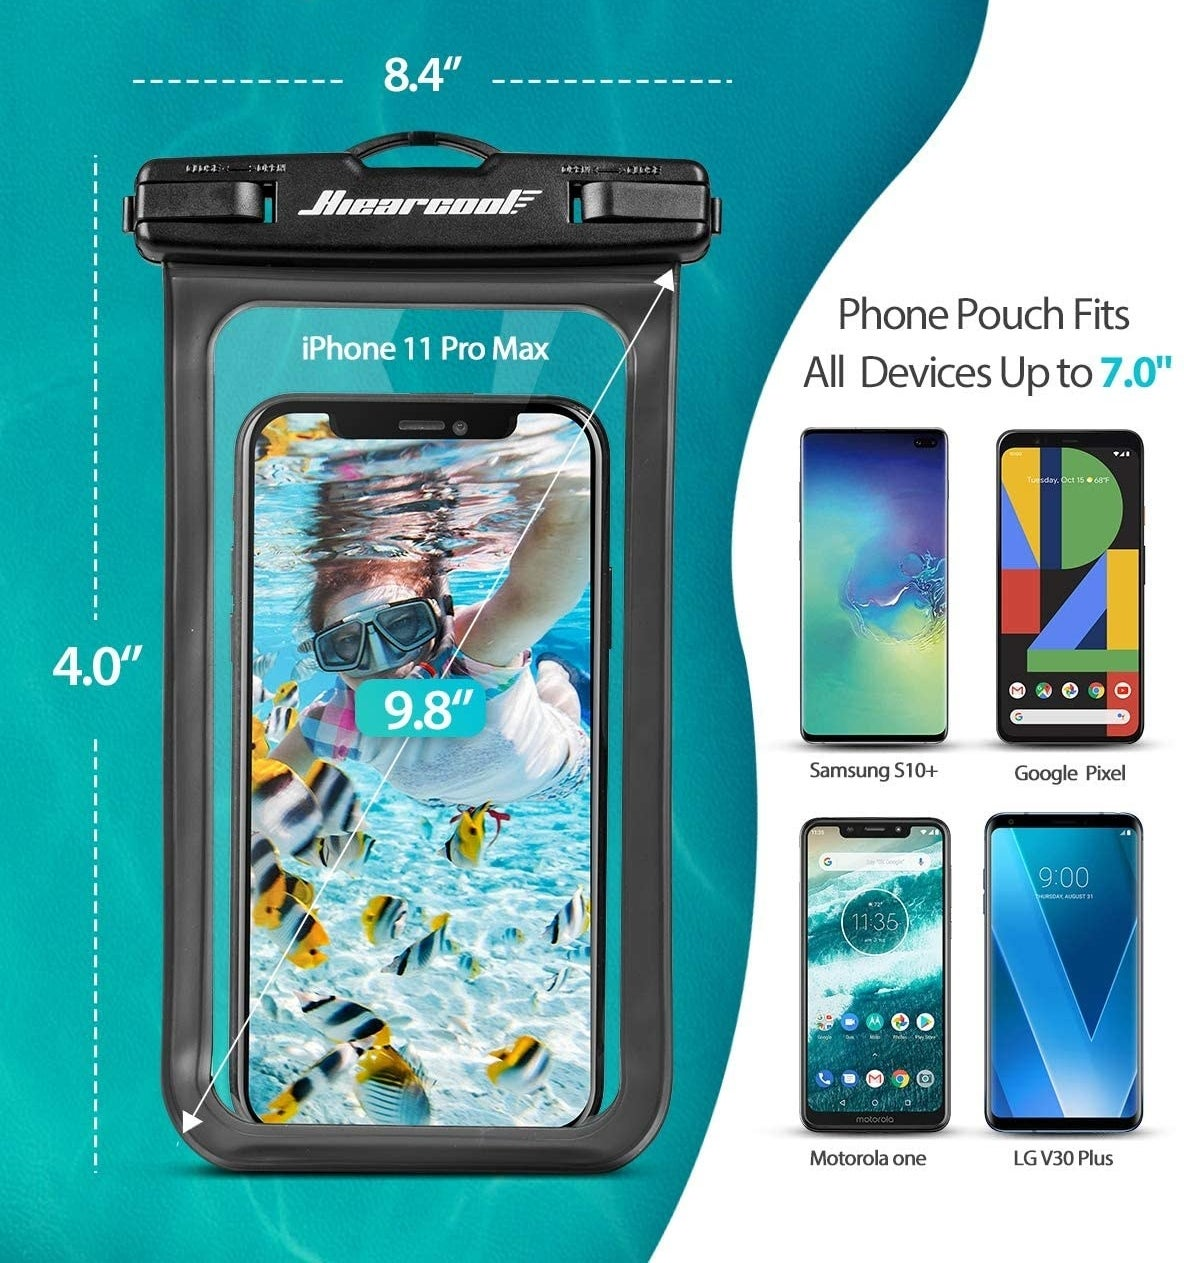 Black edged transparent bag with a phone in side of it showing an underwater image